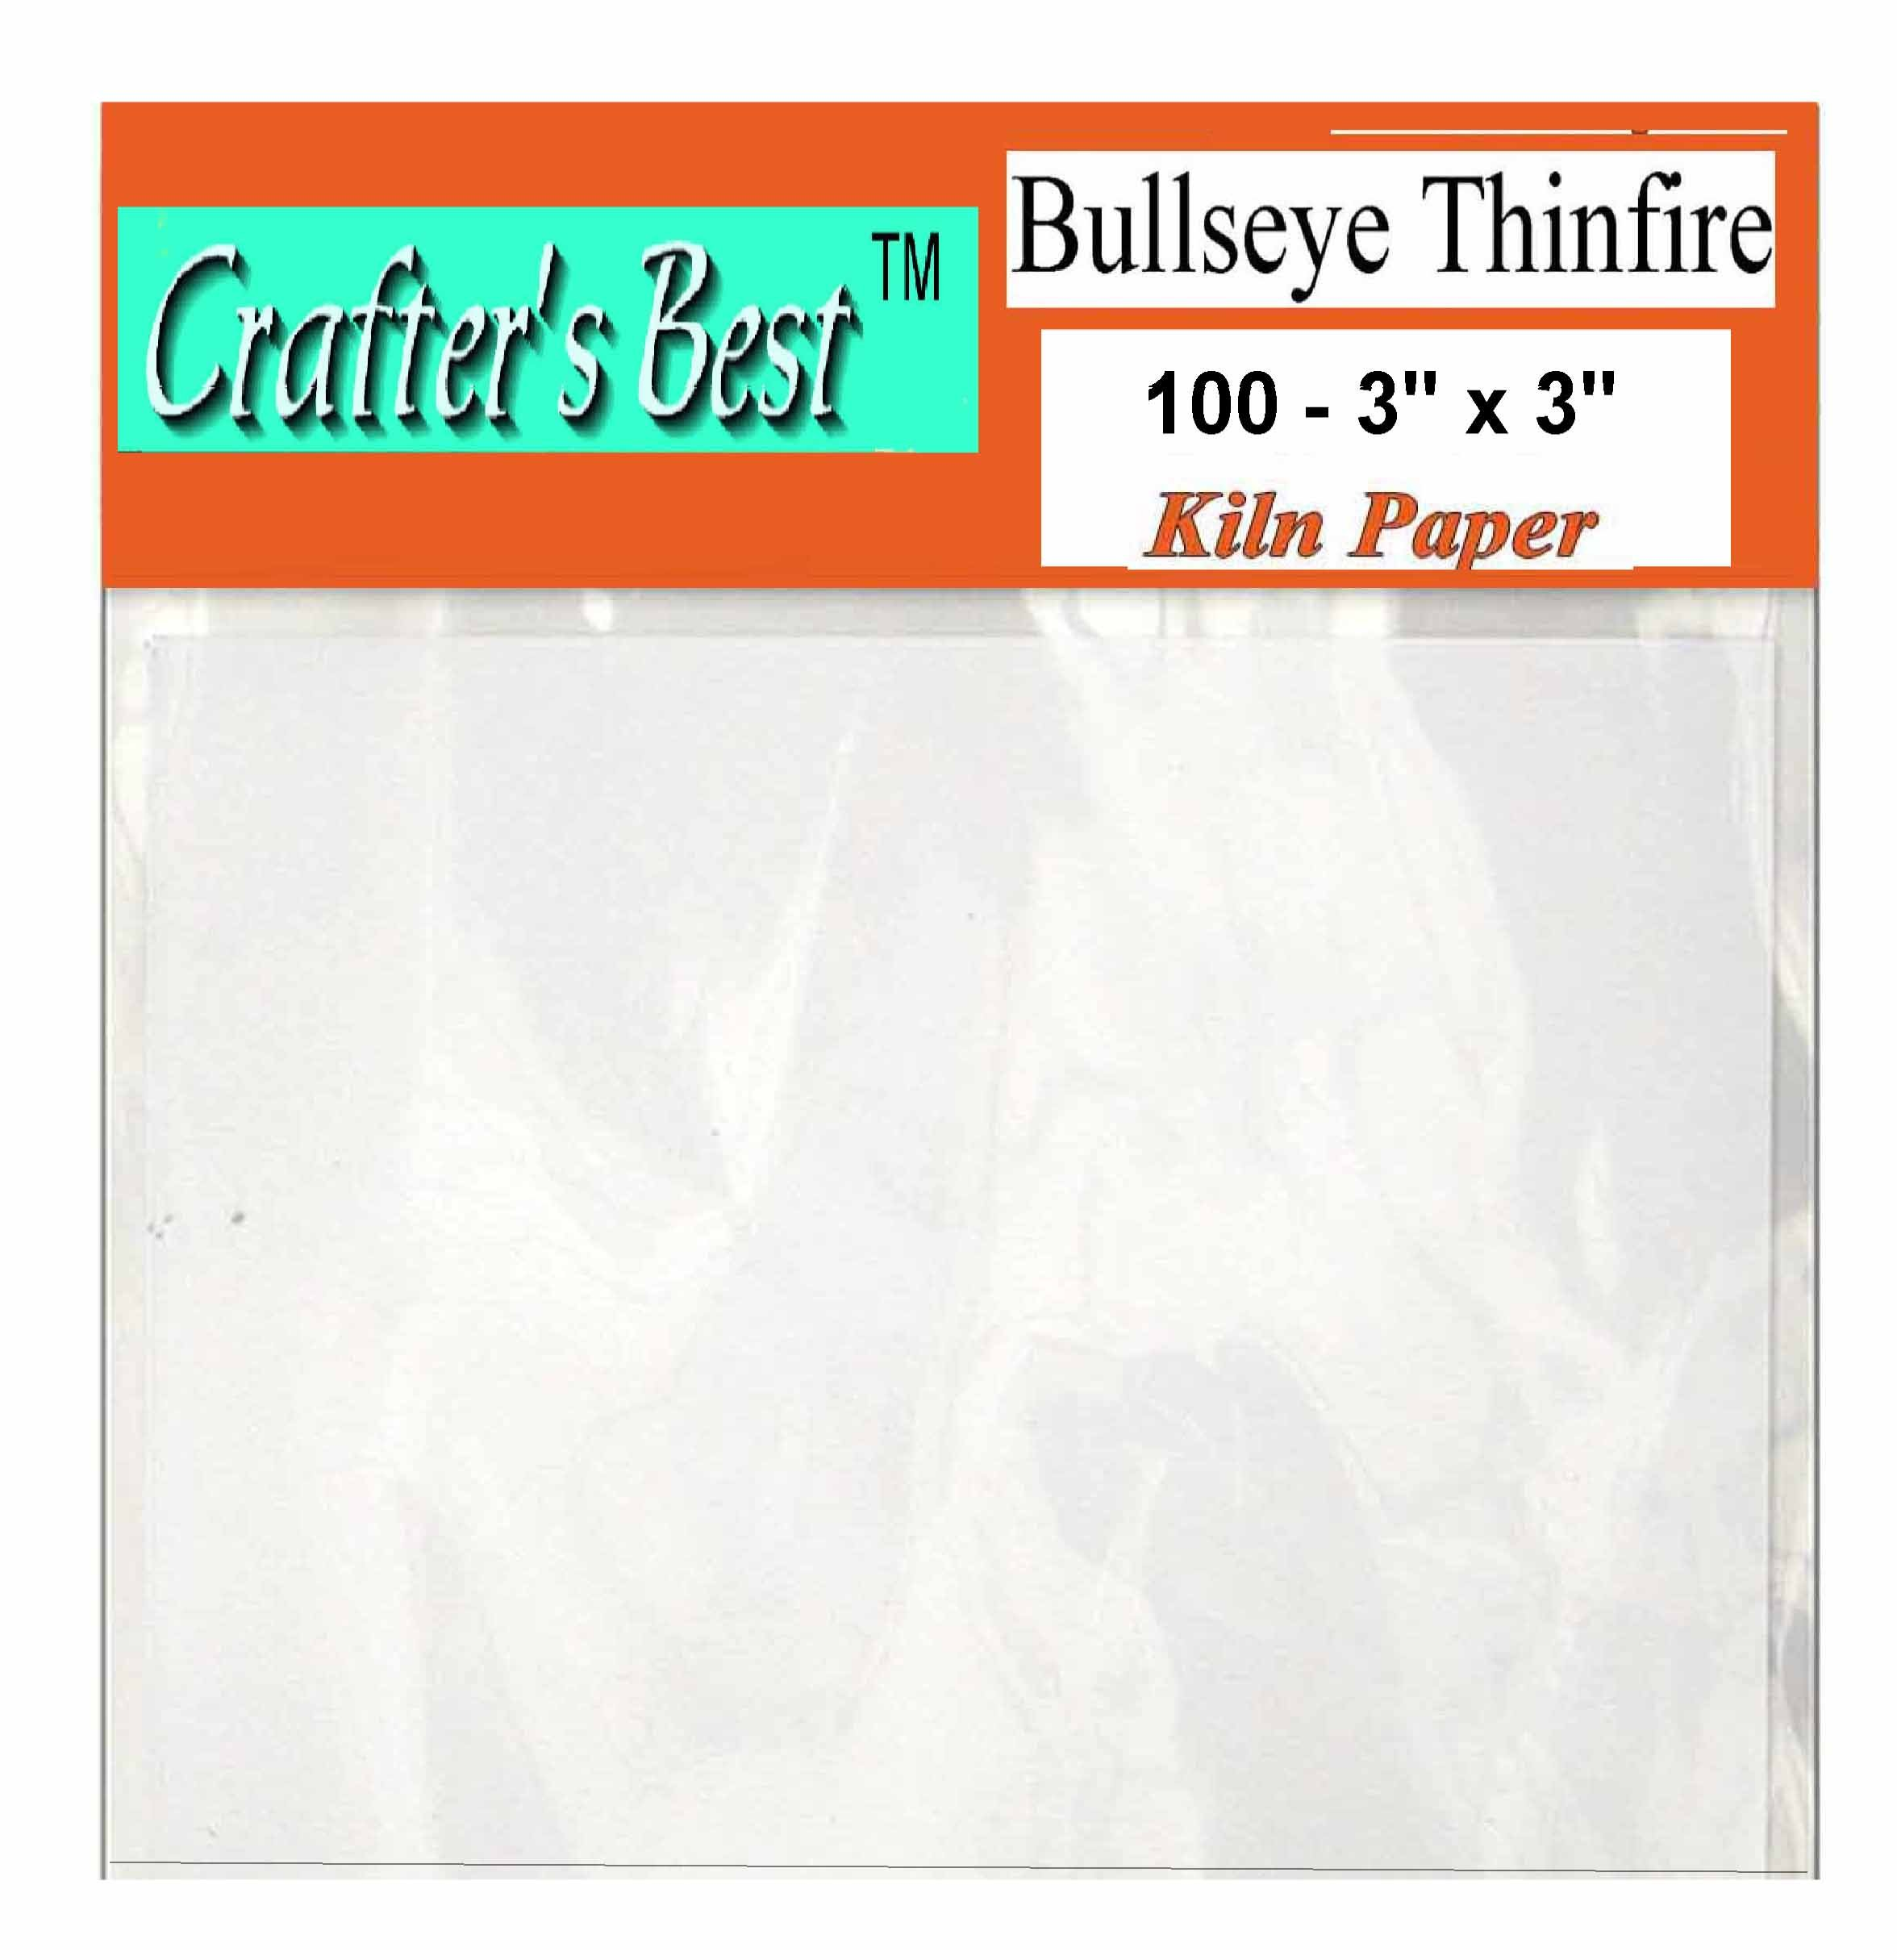 Crafter's Best 100 - Bullseye Thinfire Kiln Shelf Paper 3'' X 3'' Great for Microwave Kilns